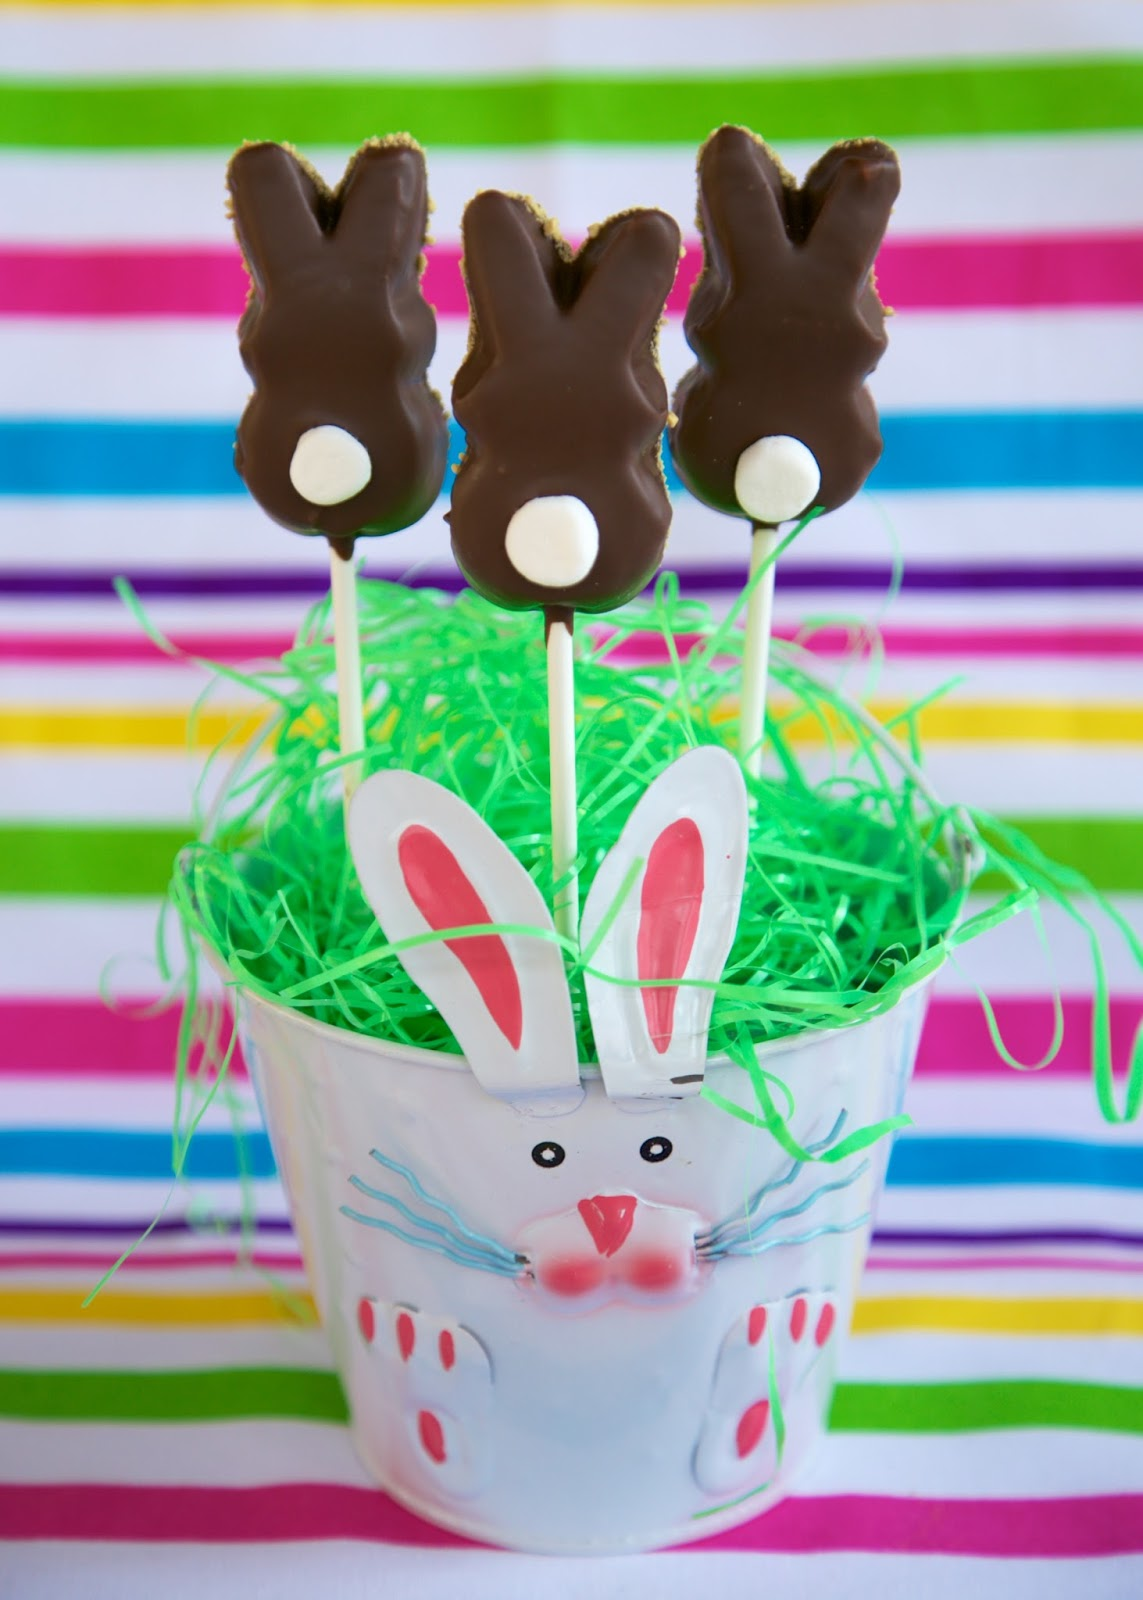 They Are Made With Bunny Peeps These Are Very Easy To Make; Simply Dip The  Peeps Into Some Melted Almond Bark, Graham Cracker Crumbs And Pop A  Marshmallow